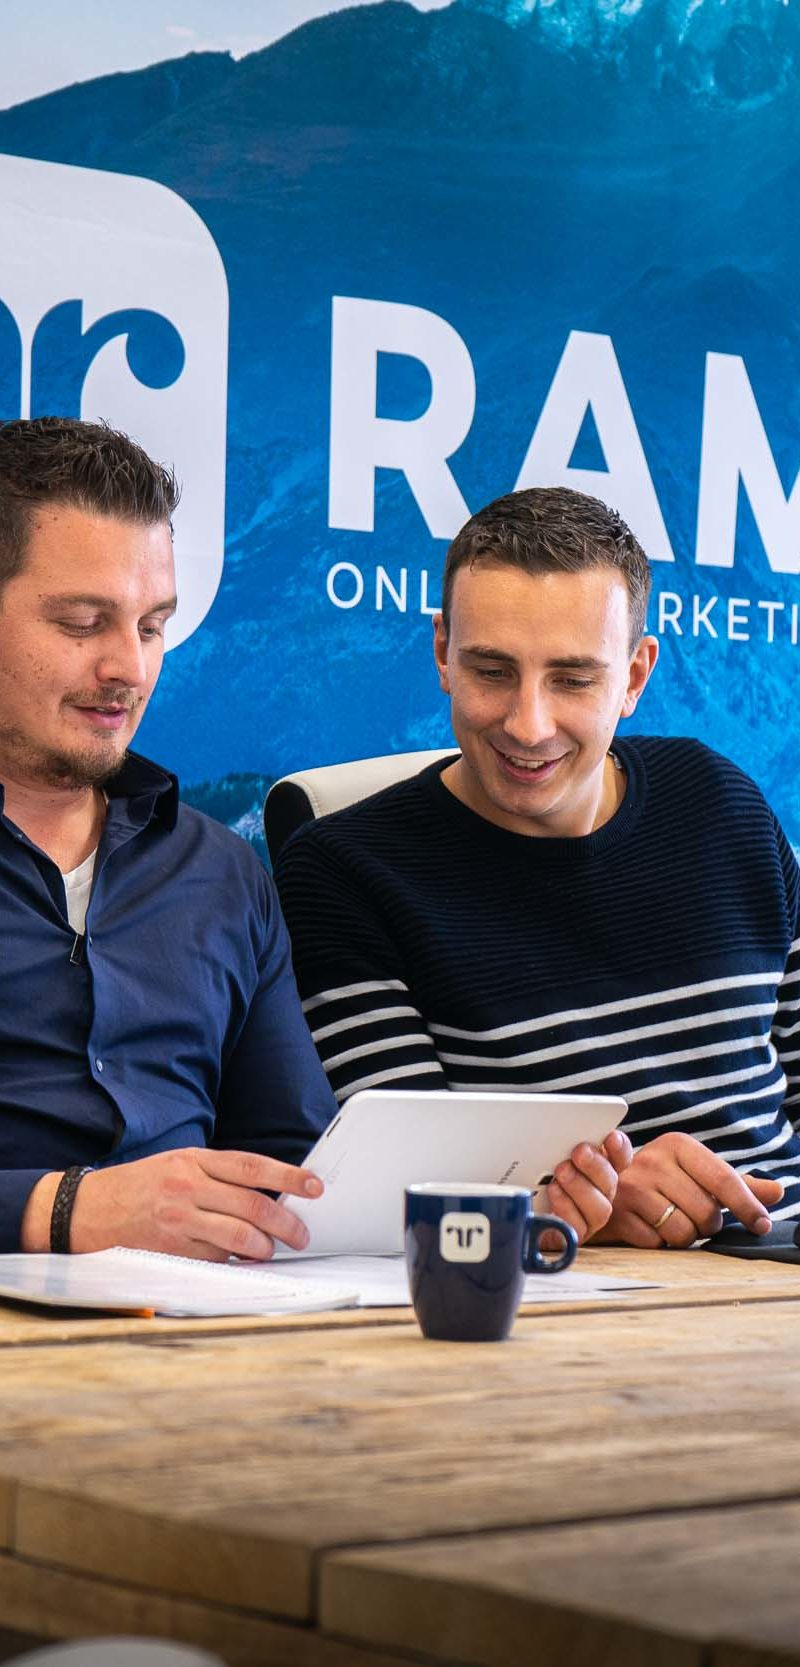 FOTO º RAM Marketing